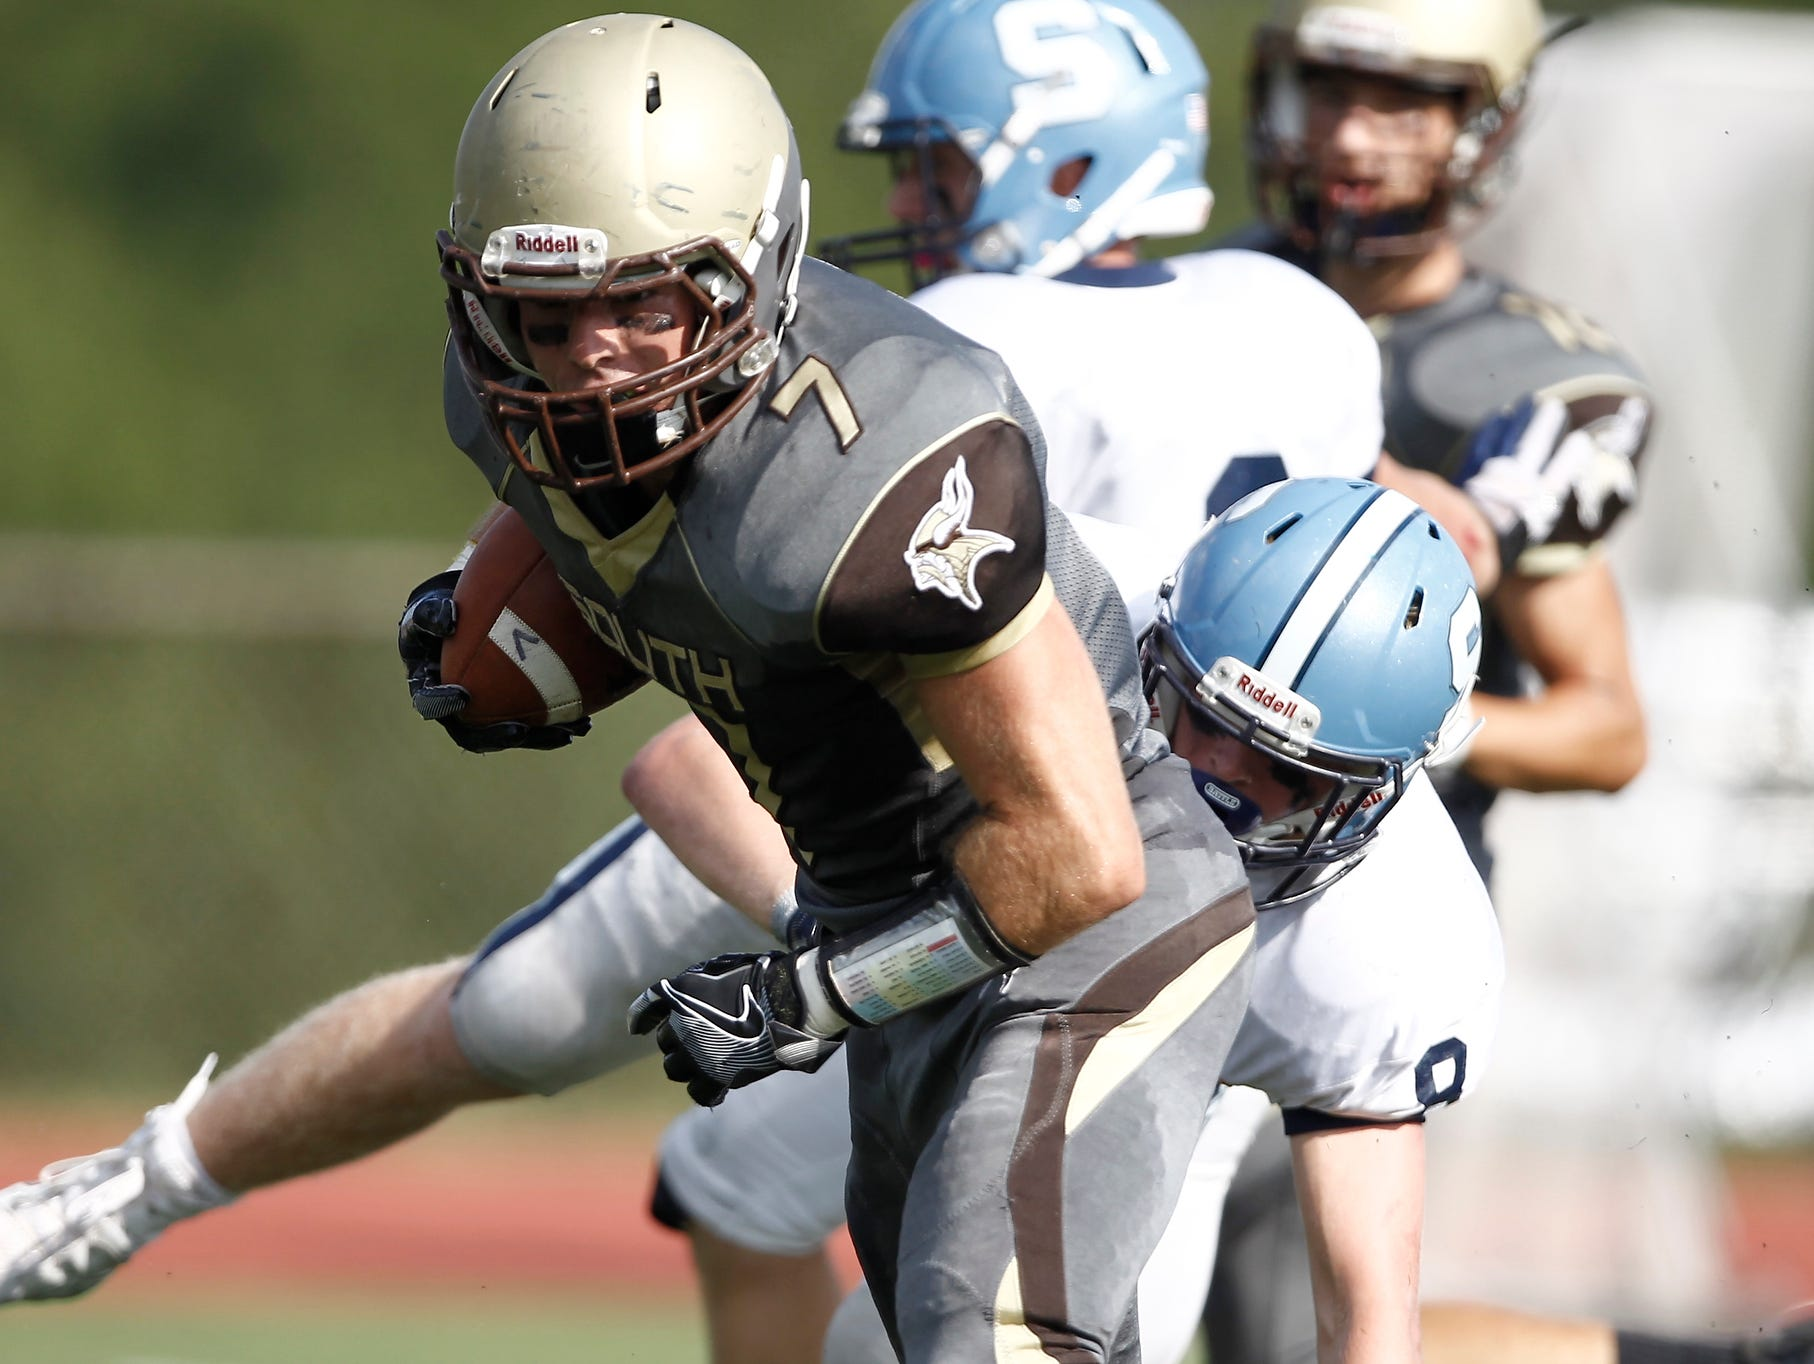 Clarkstown South's Sam Mistretta (7) works to break a tackle during their 30 - 0 win over Suffern at Clarkstown South High School on Saturday, September 17, 2016.